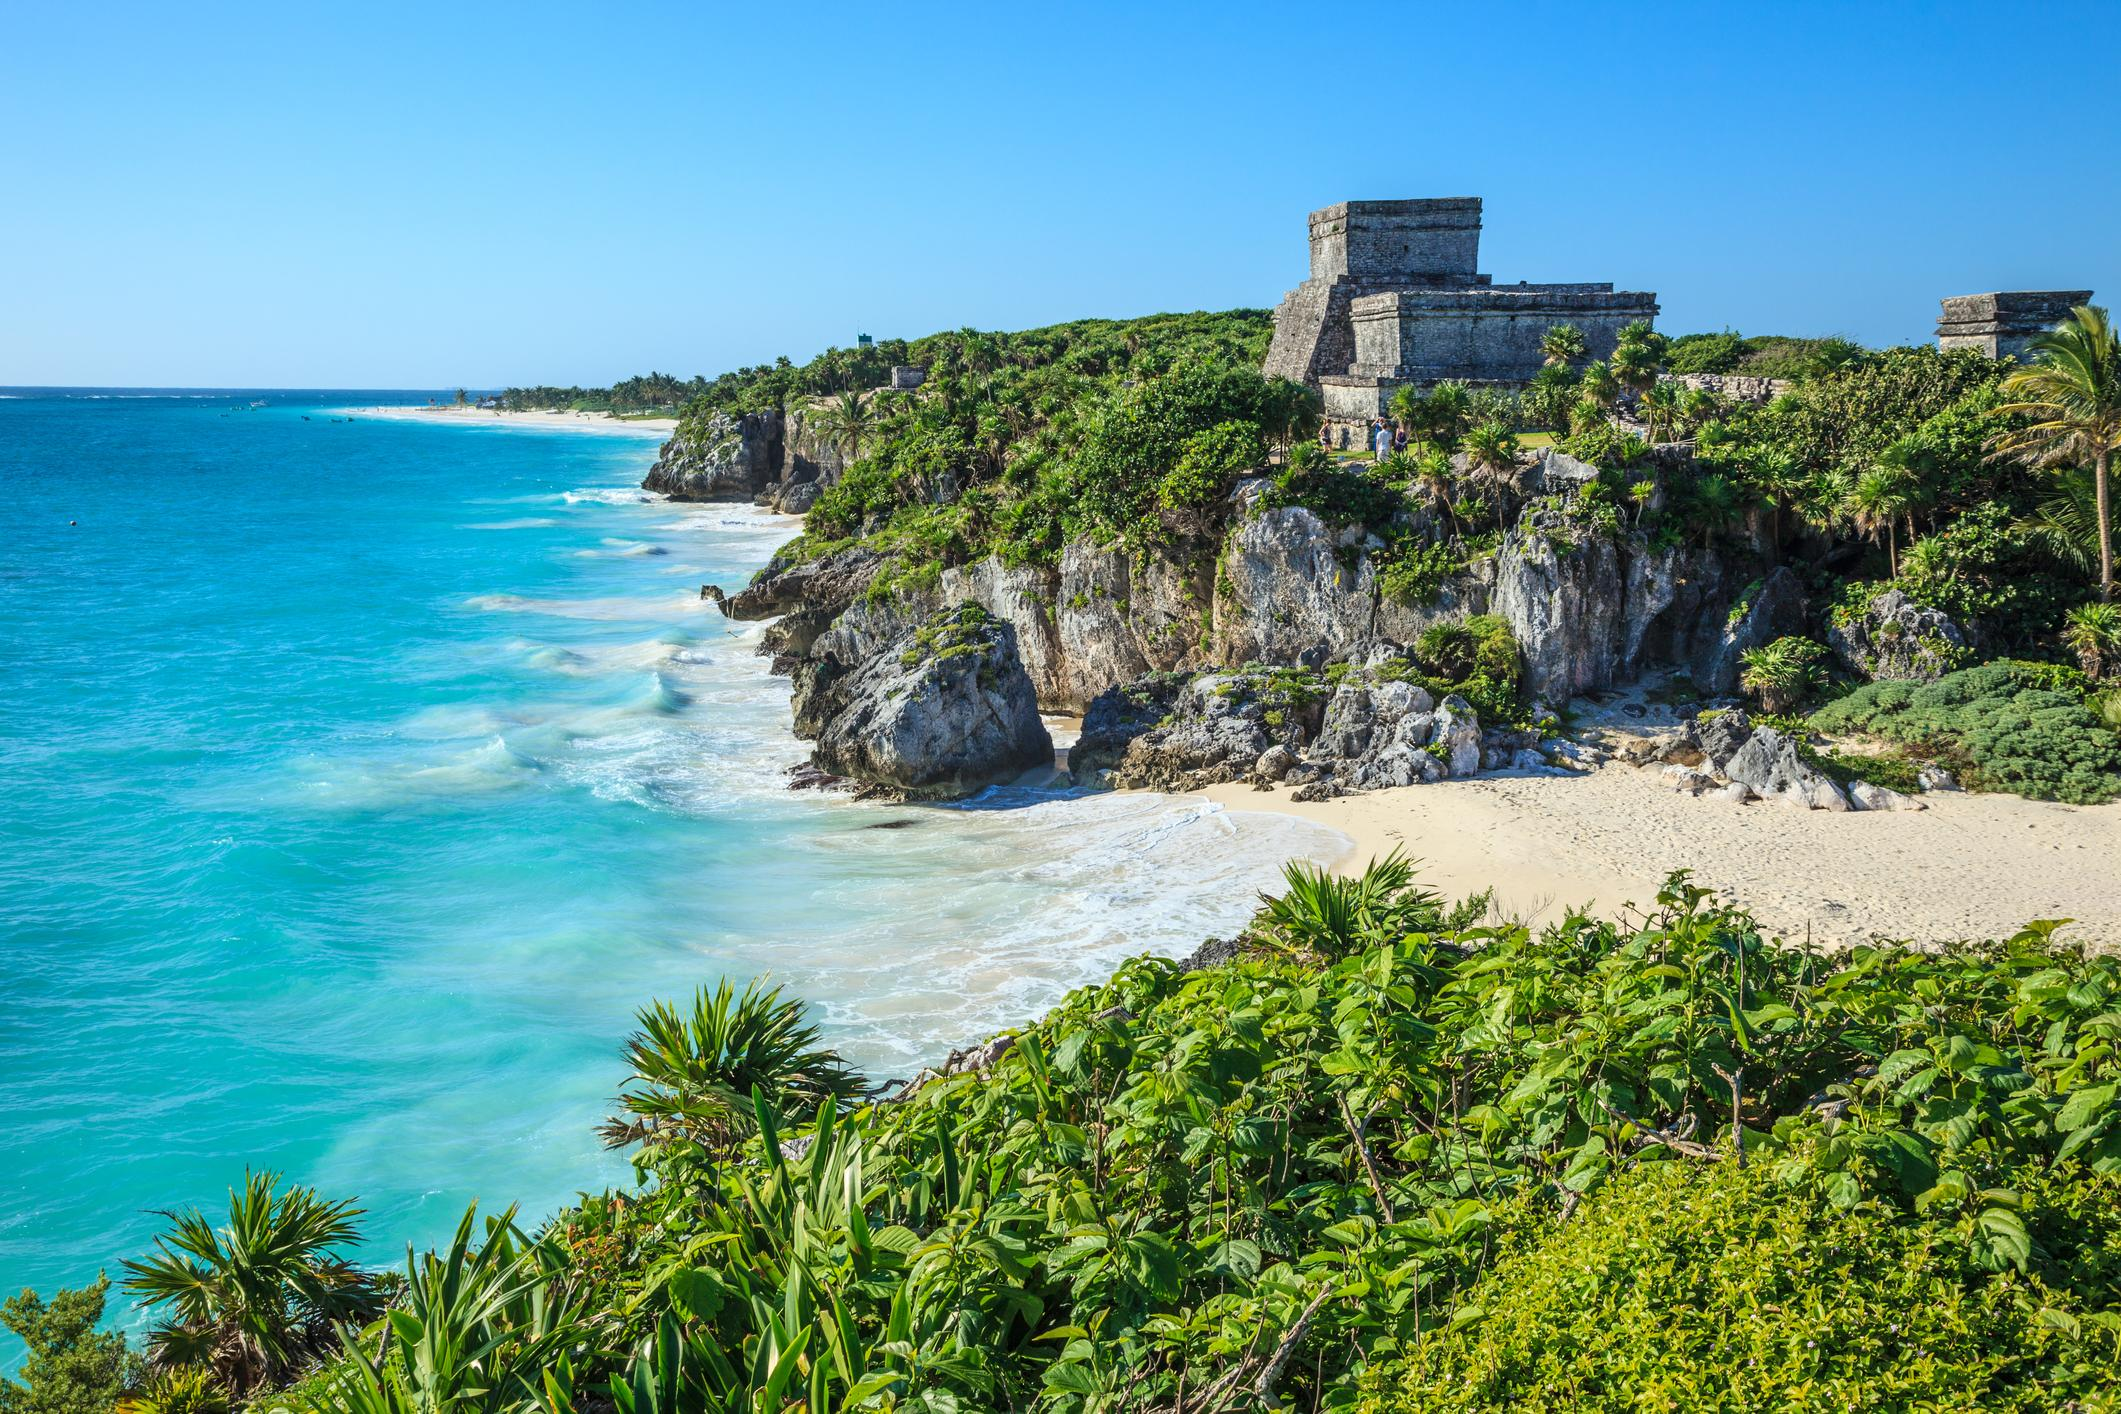 "<p>Direct flights from most cities? Check. Beautiful beaches? Check. Activities galore? Check. You'll get everything you want as the new Mr. and Mrs. — this region of Mexico is filled with a ton of accommodation options, so it's competitively priced. Plus, many hotels like <a href=""https://www.tripadvisor.com/Hotel_Review-g499445-d11775703-Reviews-UNICO_20_87_Hotel_Riviera_Maya-Akumal_Yucatan_Peninsula.html"" rel=""nofollow noopener"" target=""_blank"" data-ylk=""slk:Unico 20˚87"" class=""link rapid-noclick-resp"">Unico 20˚87</a>˚offer <a href=""https://www.unicohotelrivieramaya.com/"" rel=""nofollow noopener"" target=""_blank"" data-ylk=""slk:all-inclusive options"" class=""link rapid-noclick-resp"">all-inclusive options</a> — so you'll get a luxury experience without worrying about racking up the bill during your stay. ""With all of that money saved, you can spend it on adventures outside of the resorts,"" says Batkin. ""Check out attractions like the Mayan ruins and cool towns like Tulum.""</p>"